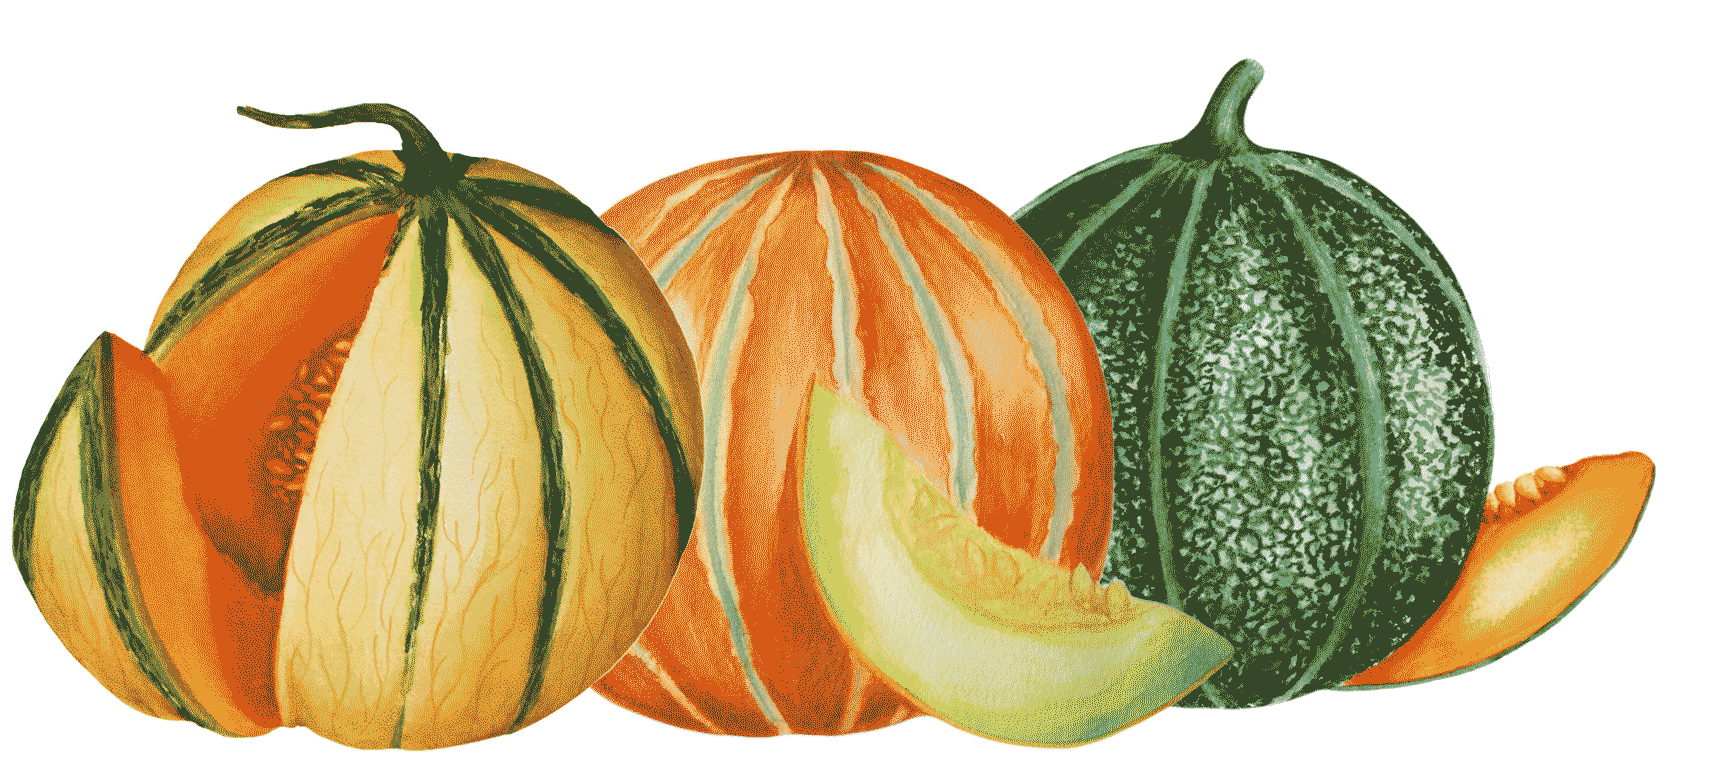 Illustration de melons